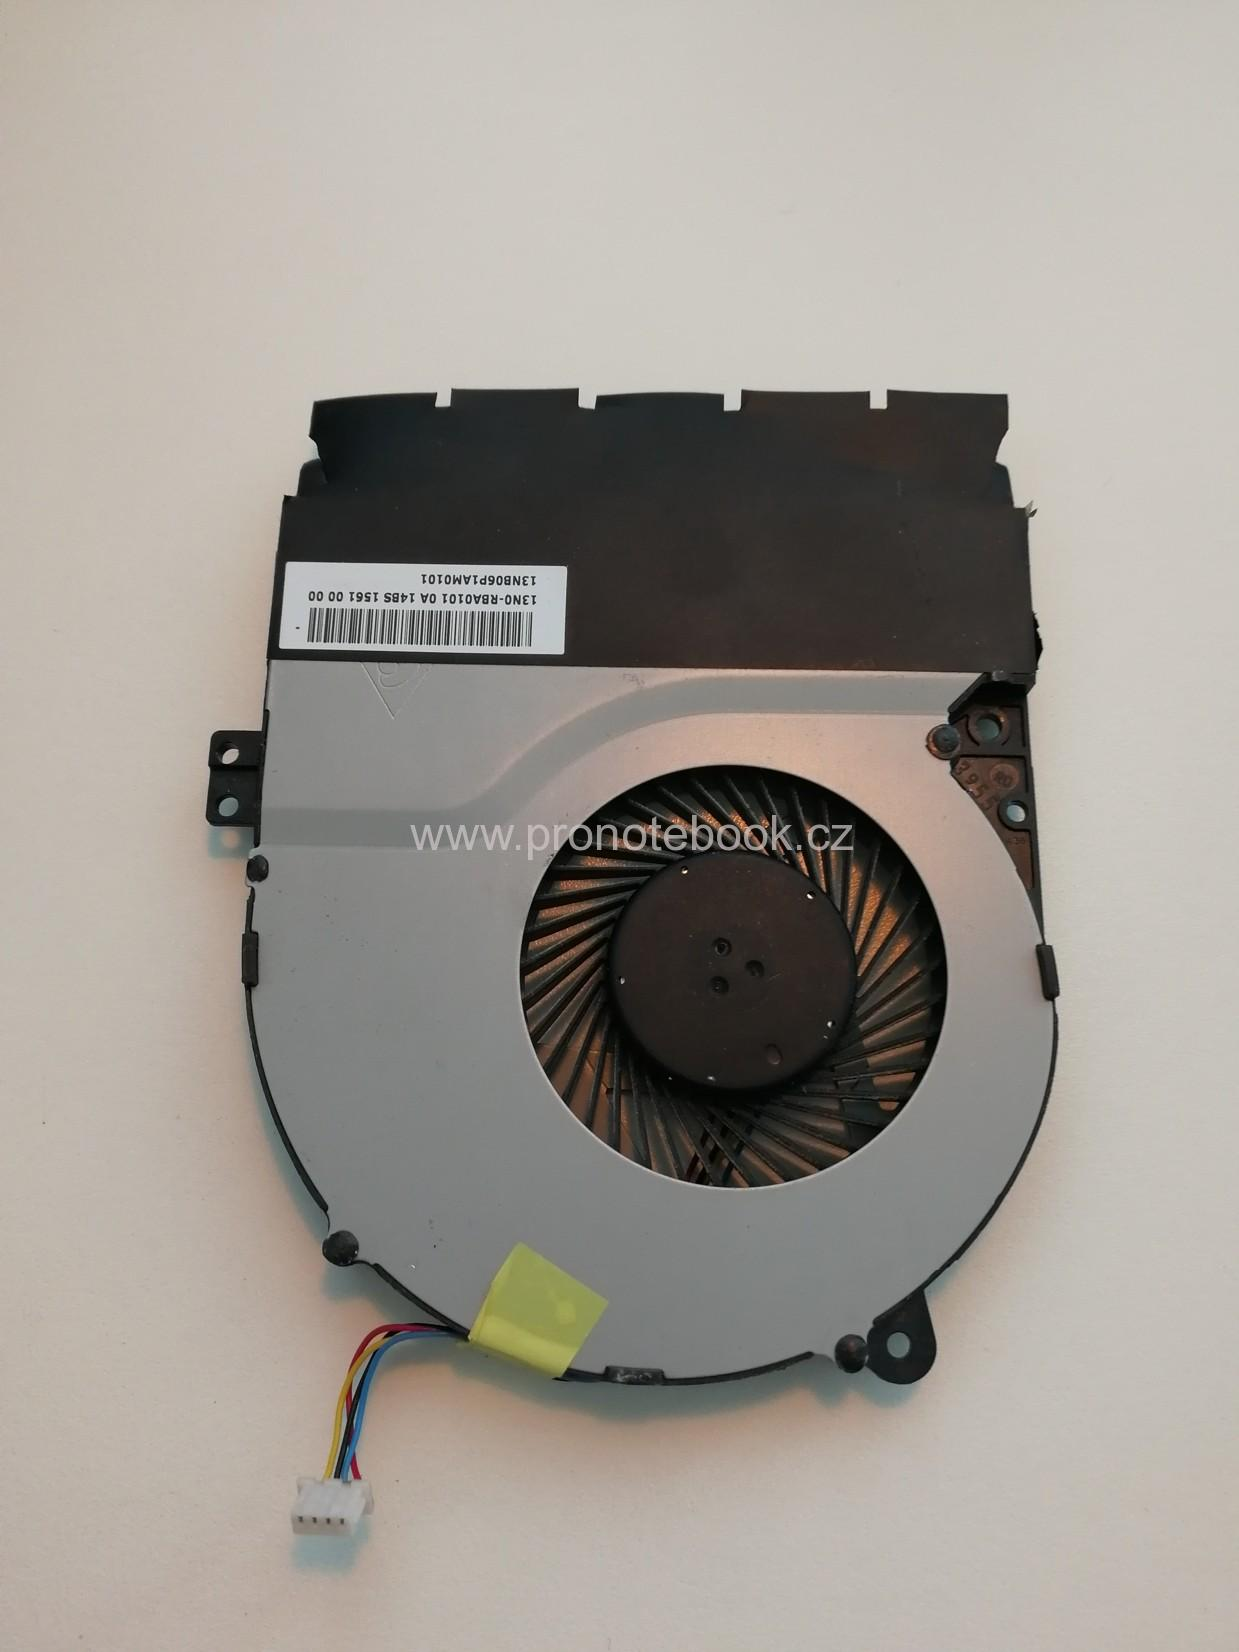 Asus 13N0-RBA0101, 13NB06P1AM0101 notebook fan